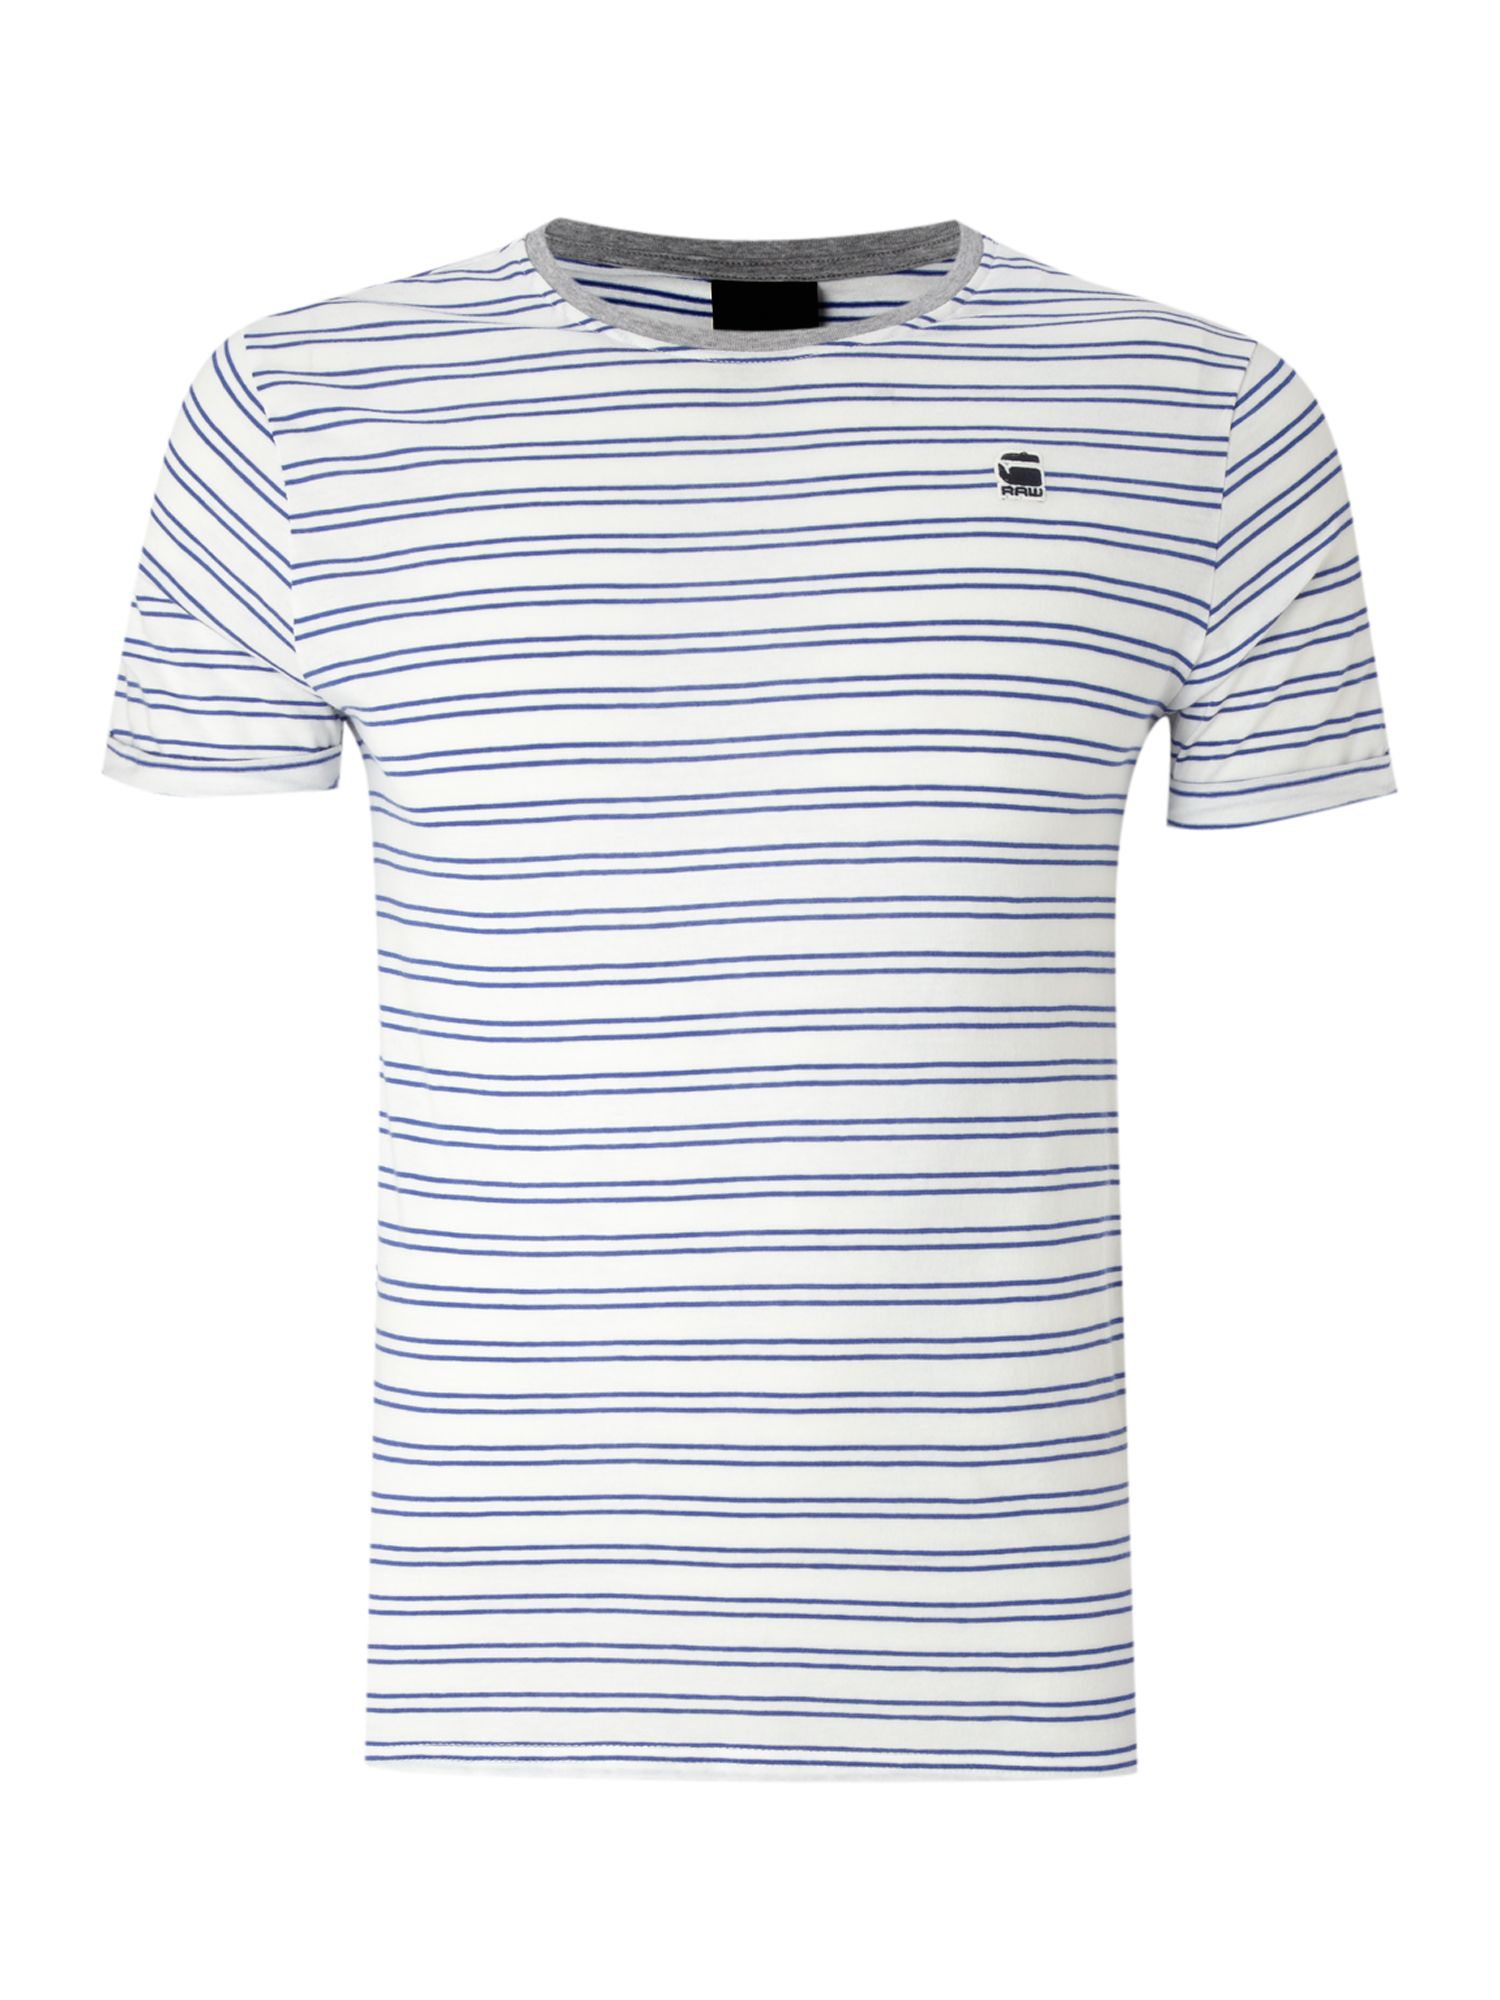 G-Star Mens G-Star Faded stripe t-shirt, Navy product image